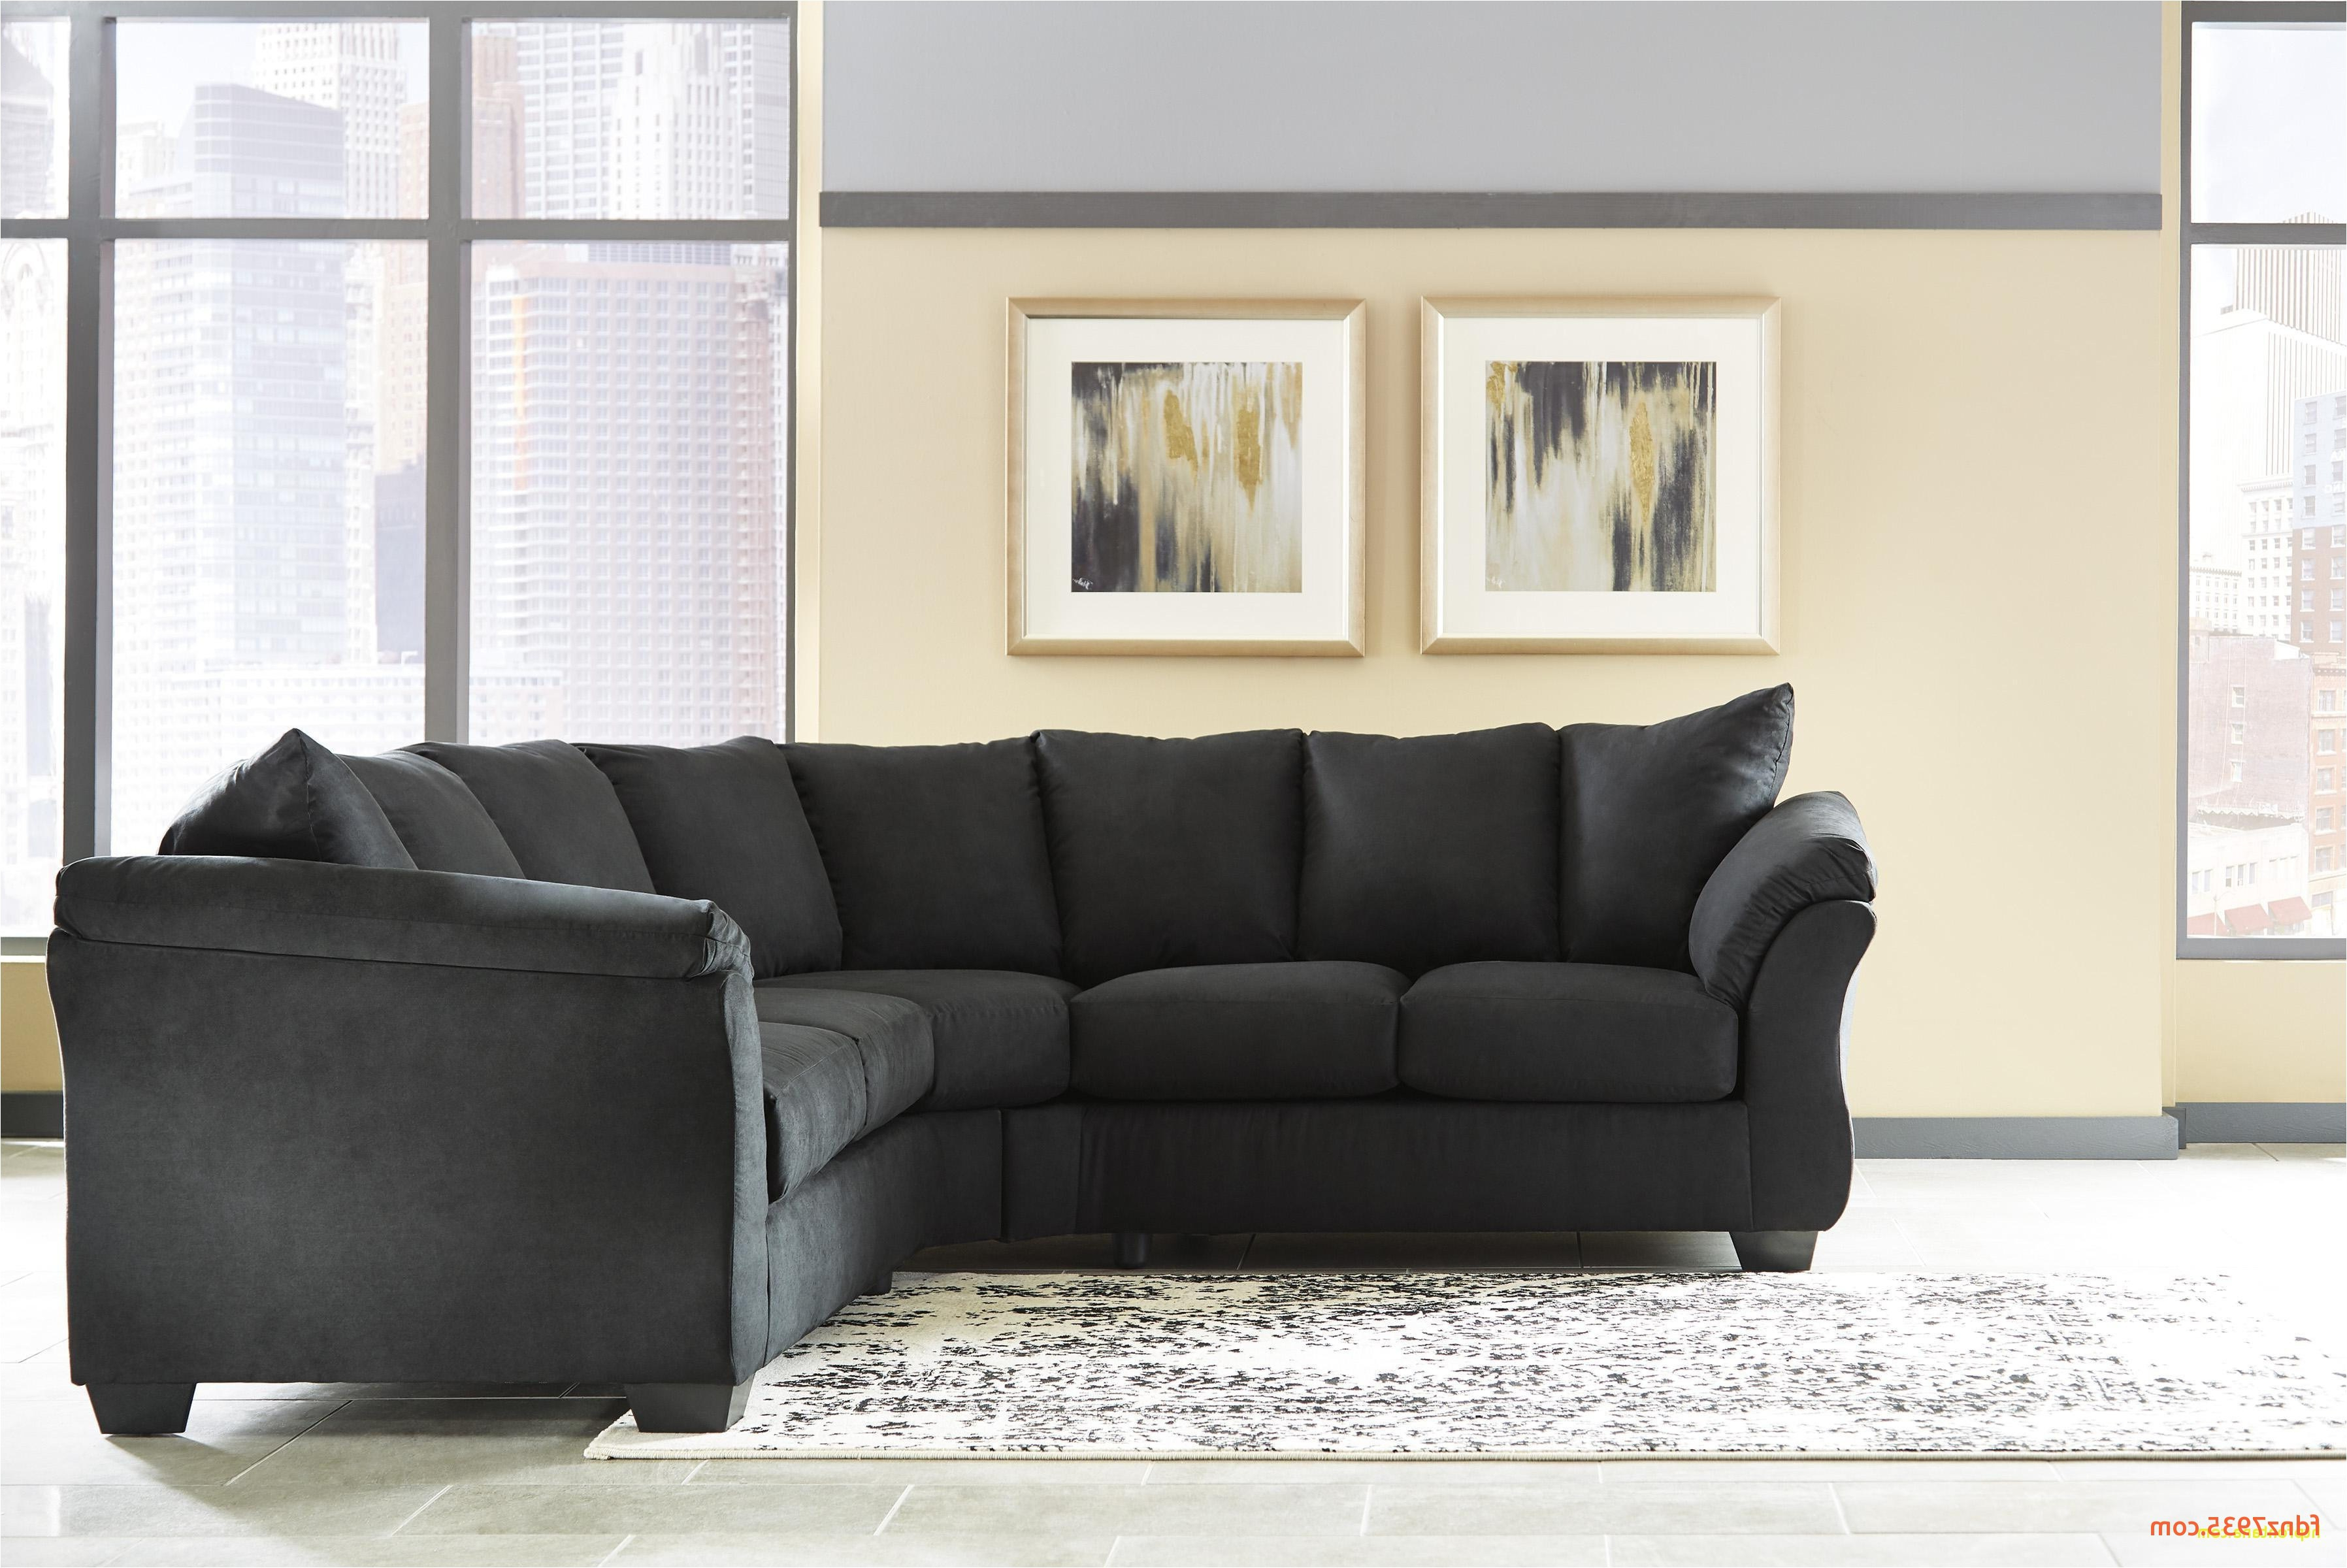 Tenny Dark Grey 2 Piece Left Facing Chaise Sectionals With 2 Headrest For Latest Stylish Casual Classic Steel Piece Sectional Sofa Denali Rc (View 9 of 20)